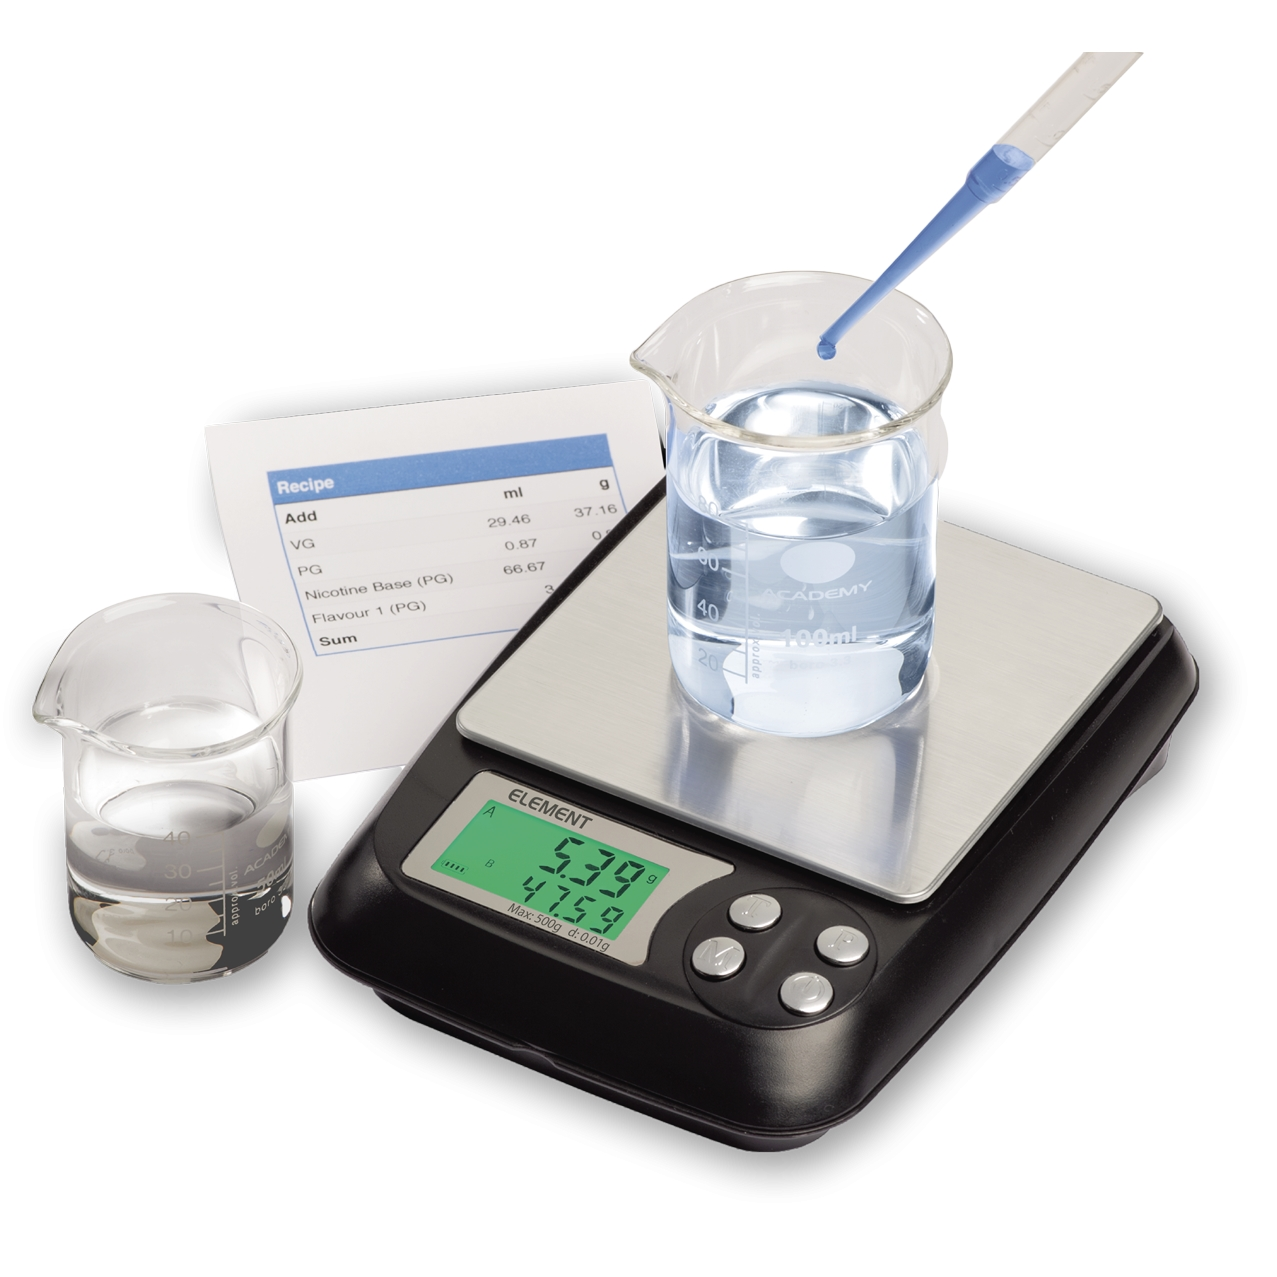 TruWeigh ELEMENT E-Liquid Measuring Weigh Scale 500g x 0.01g